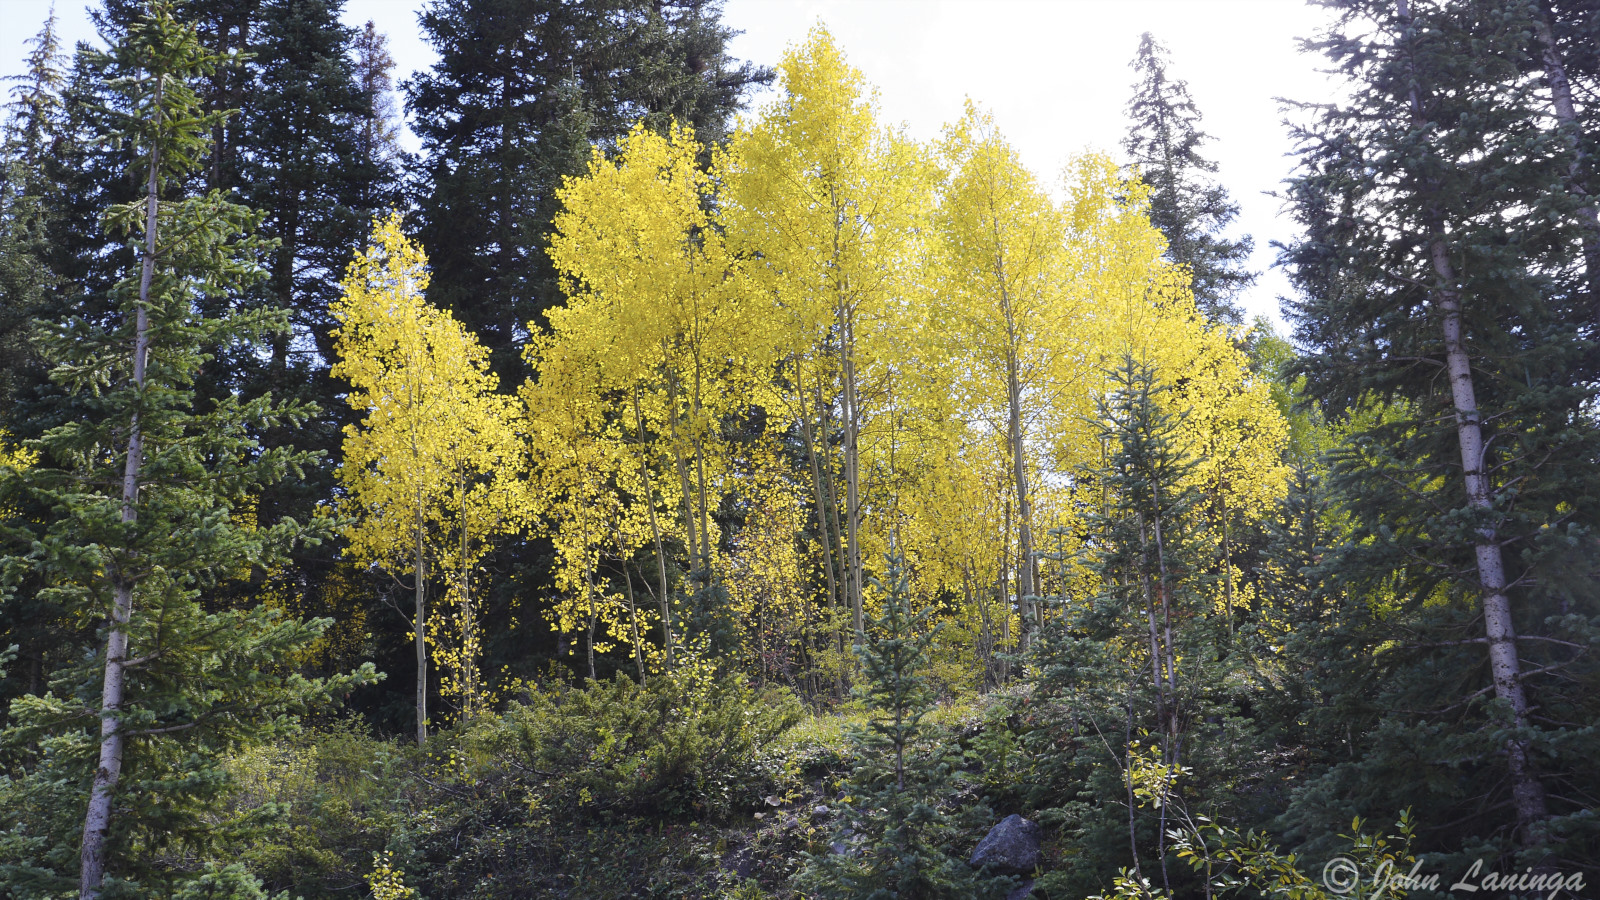 Aspen trees in all their fall glory